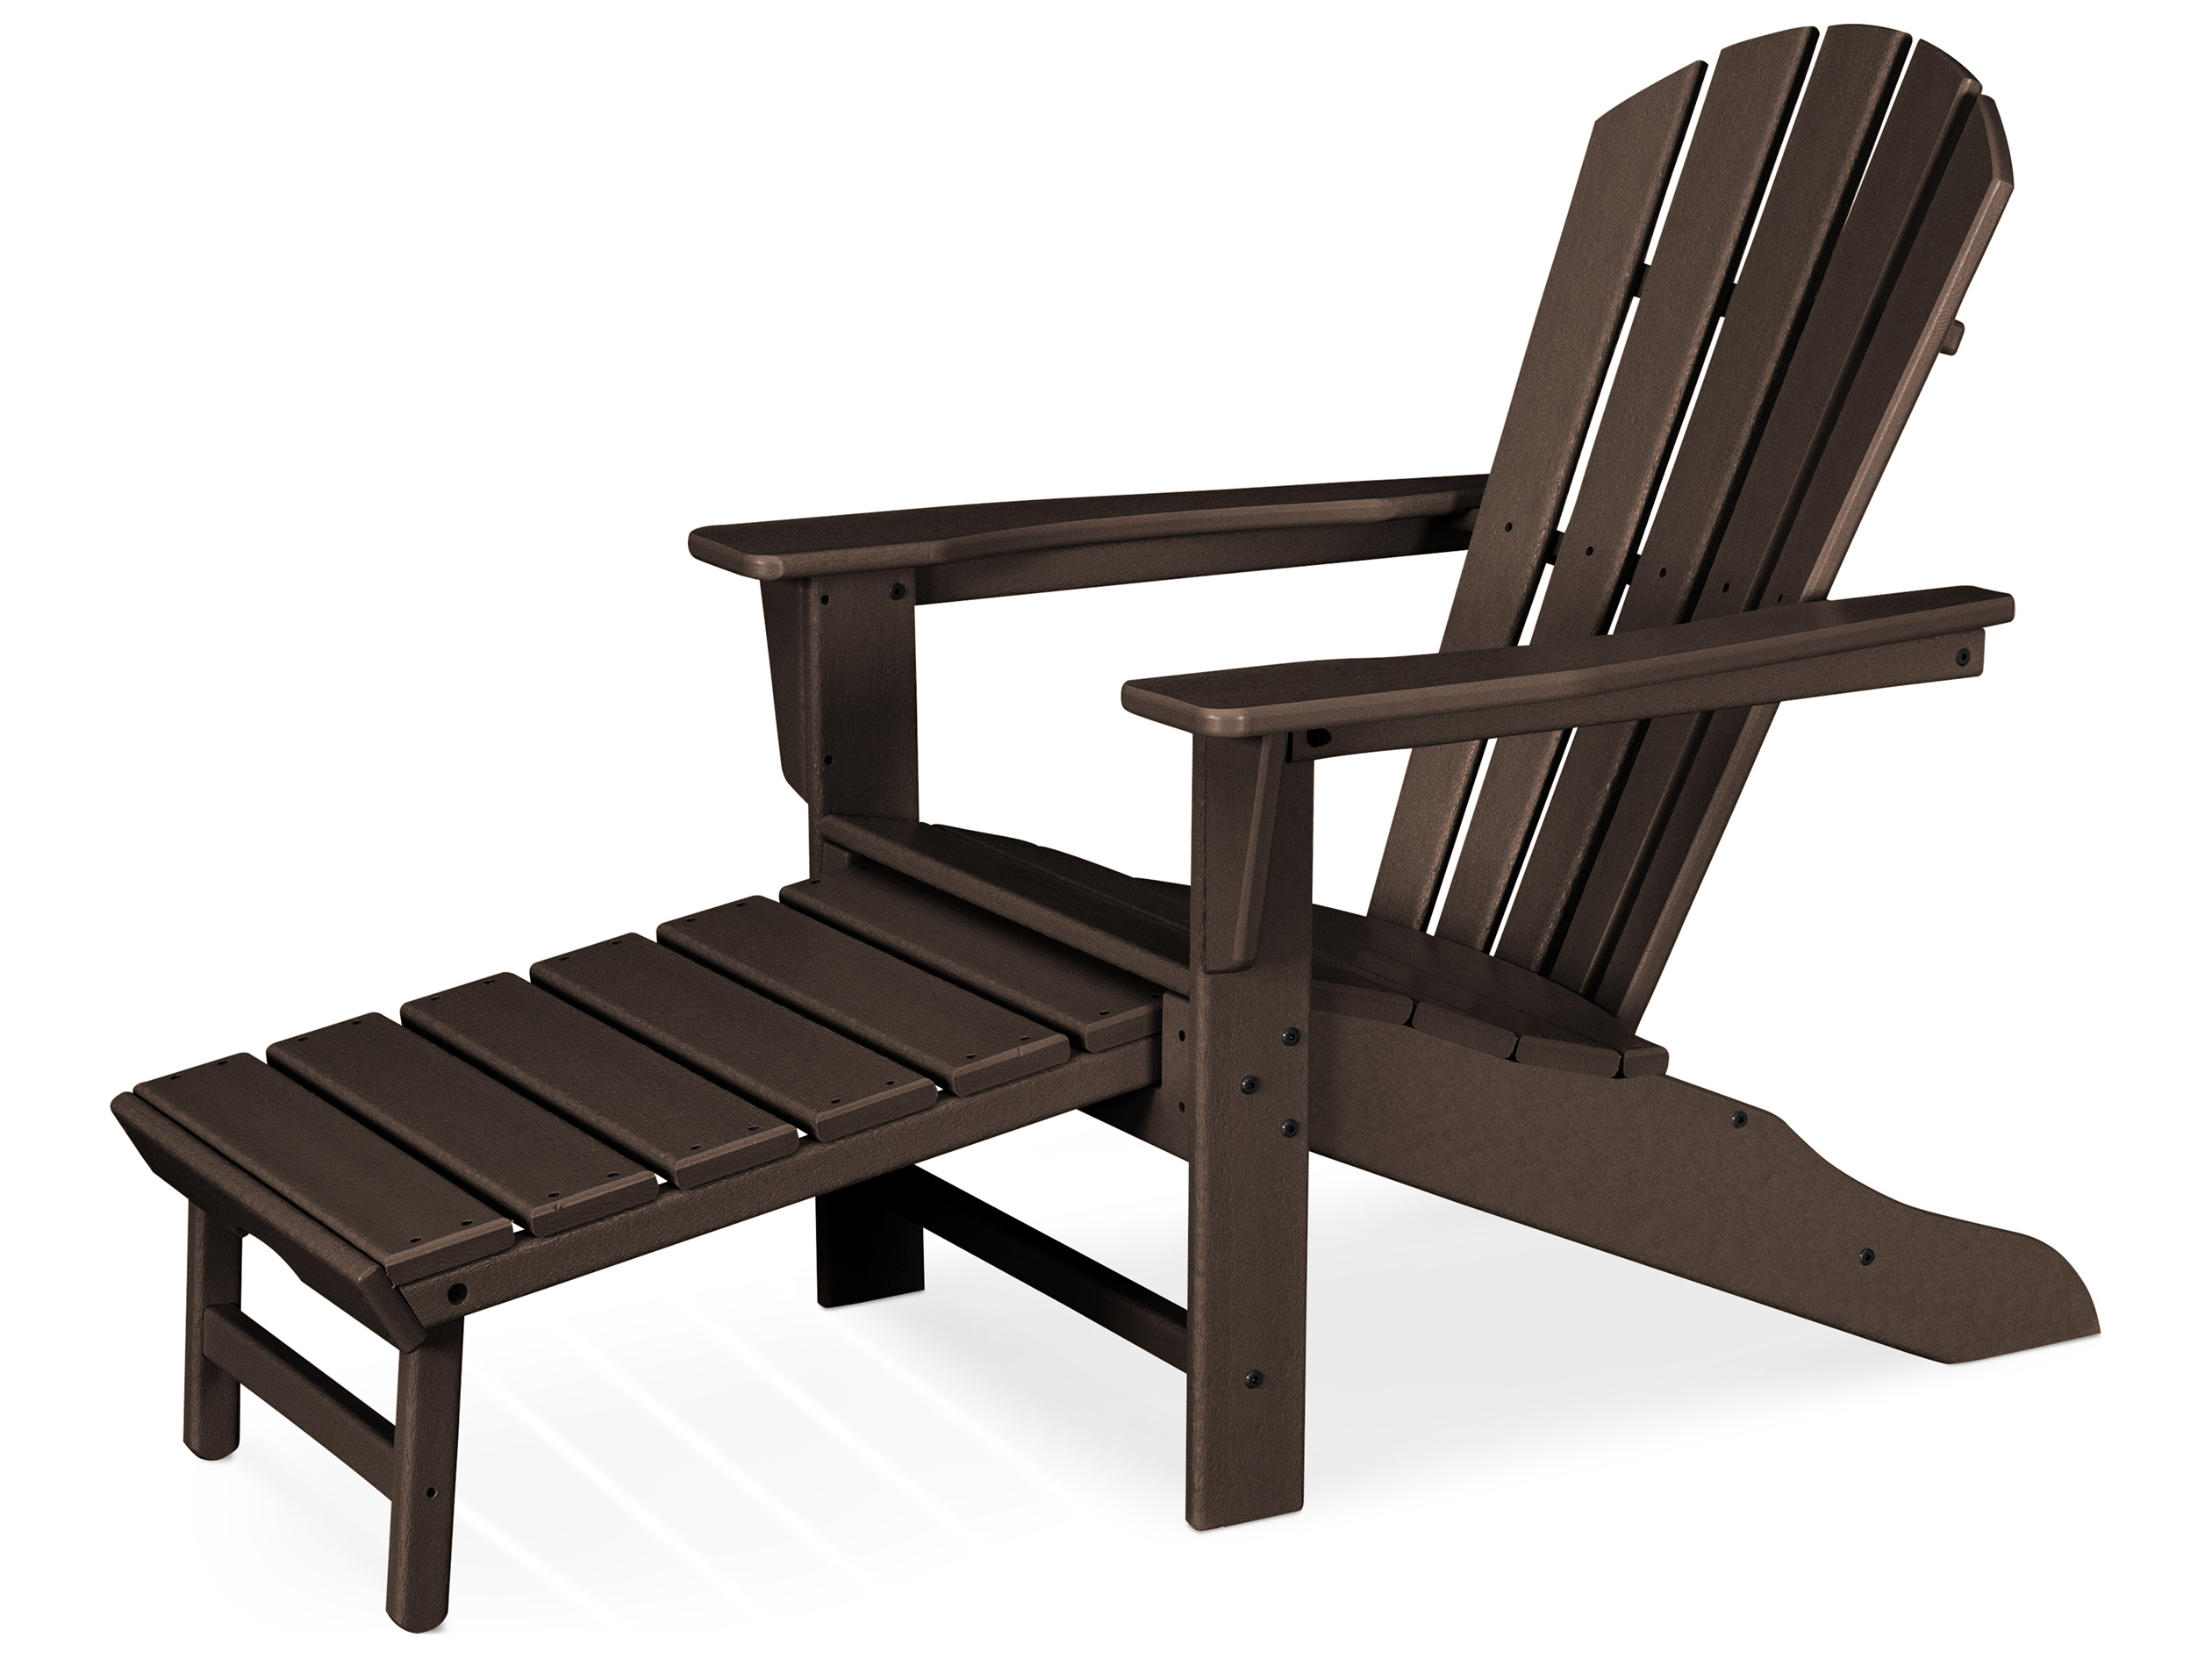 Polywood South Beach Recycled Plastic Adirondack Arm